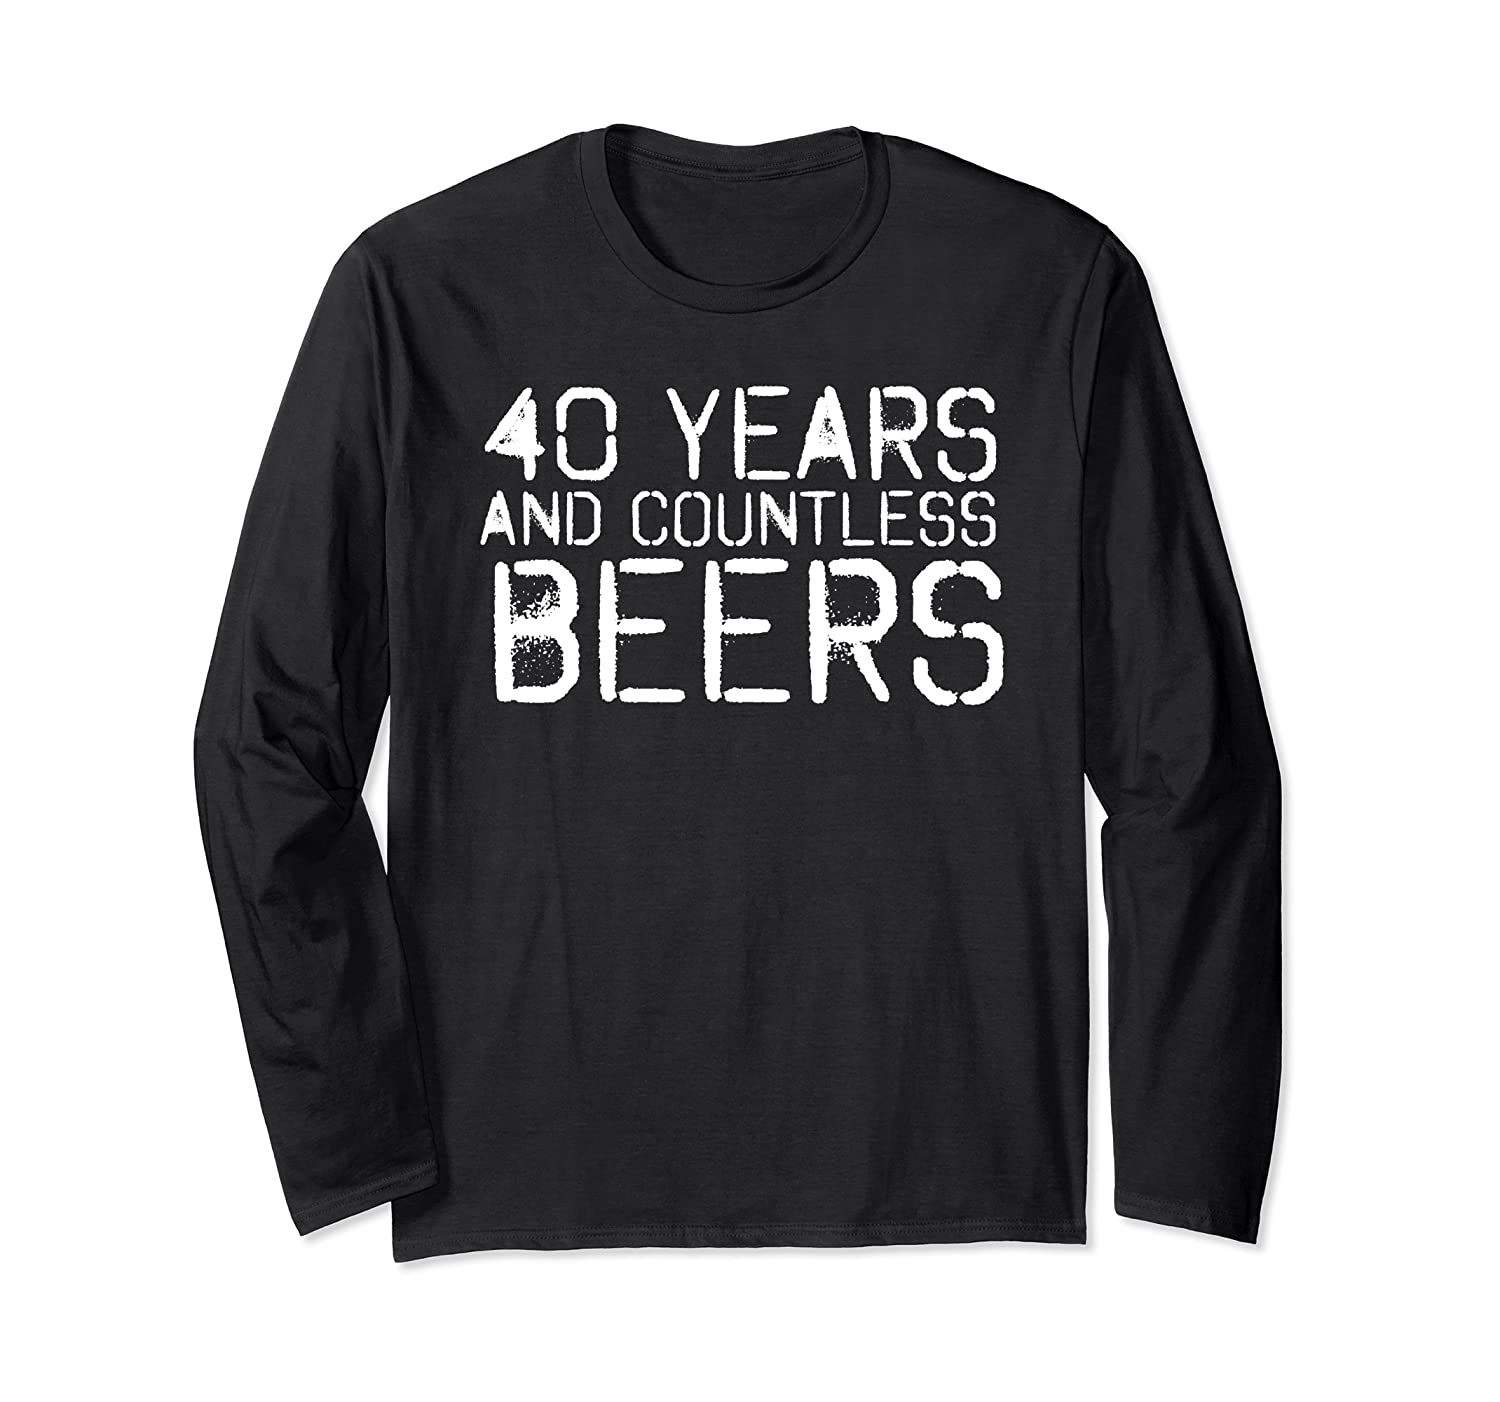 40 YEARS AND COUNTLESS BEERS Funny Drinking Gift Idea Long Sleeve T-Shirt-Awarplus